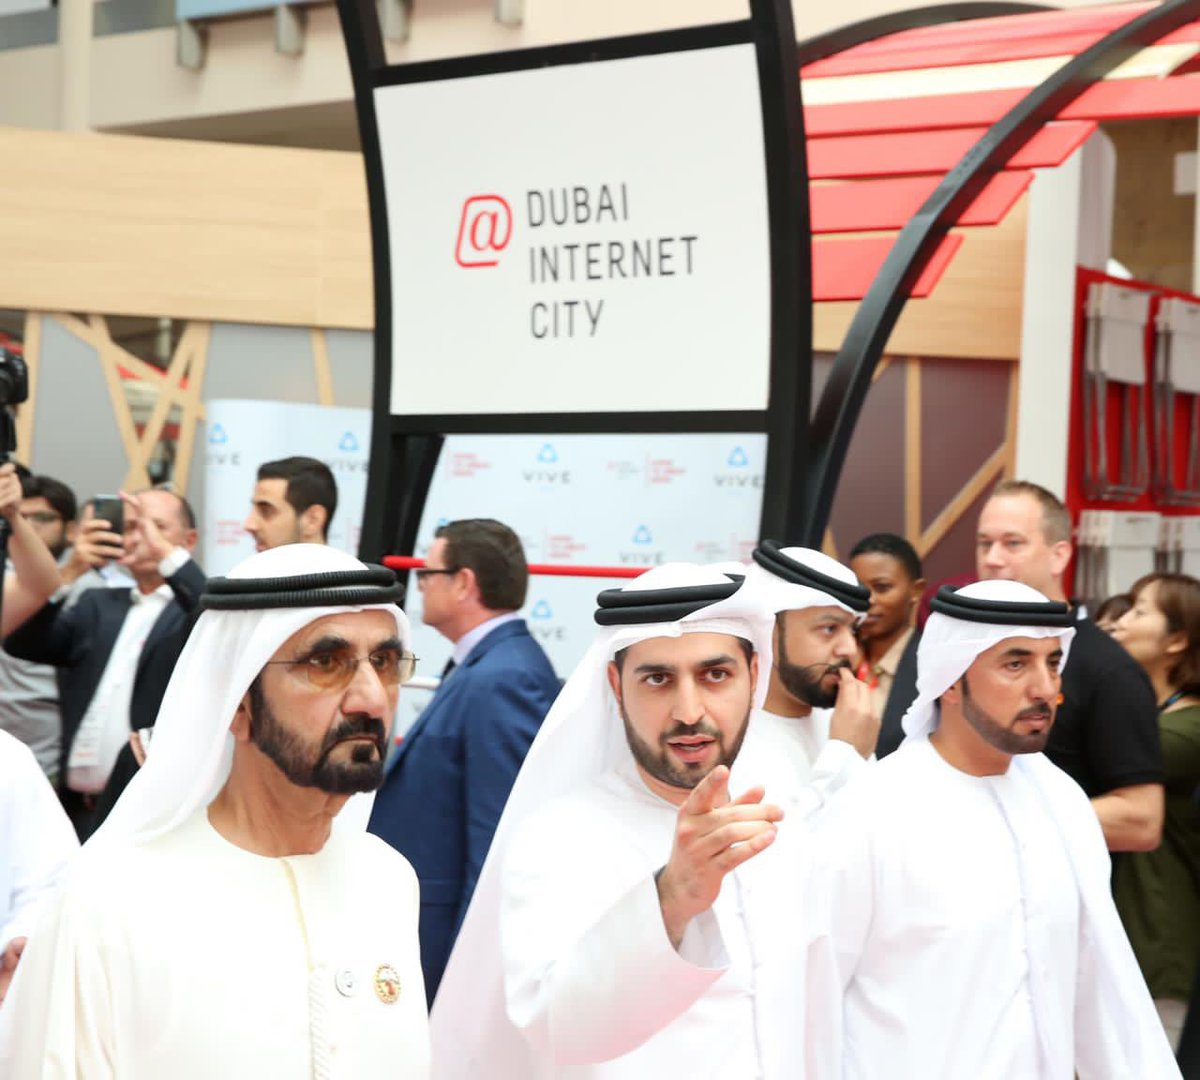 Highlights from #GITEX2019 Meet us at the #DubaiInternetCity pavilion to find out #WhereMindsClick – from independent talent, to start-up unicorns and multinational giants –to drive the nation's #digital evolution. https://t.co/yuw9OeVgX4